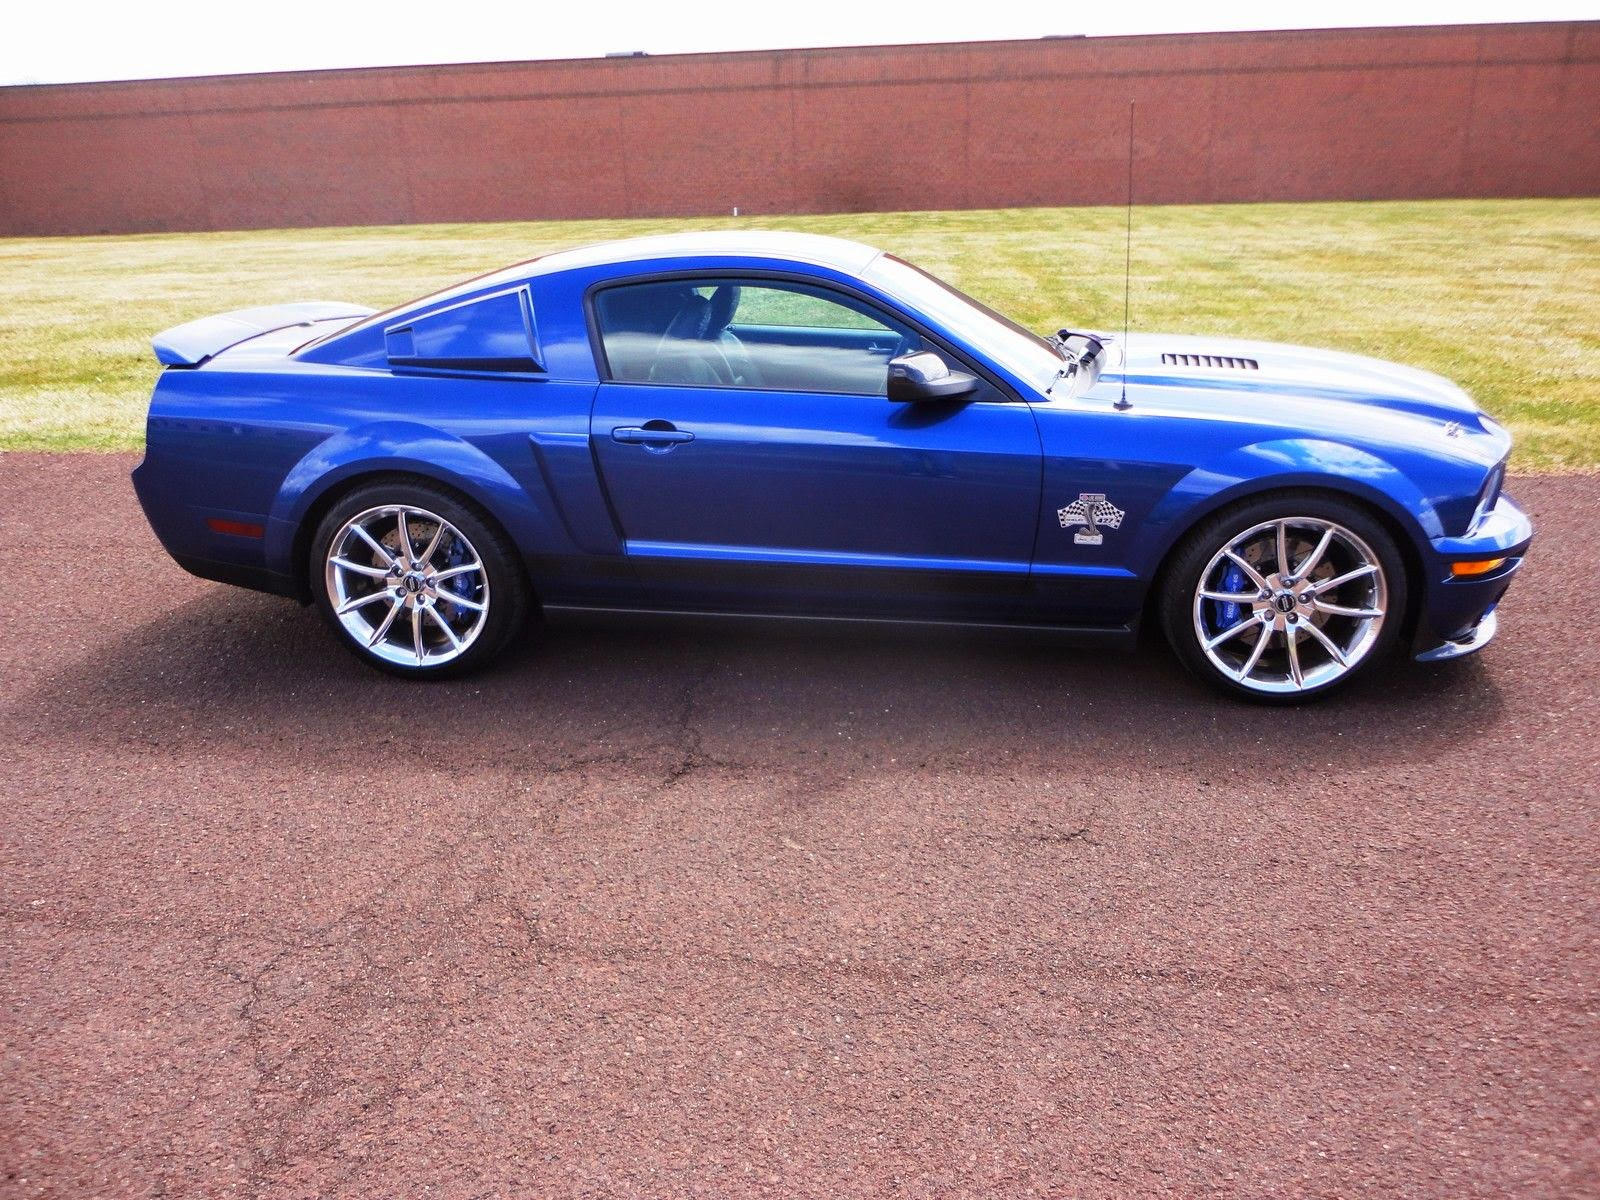 Ford Mustang Shelby GT500 Super Snake 725HP ~ For Sale ...